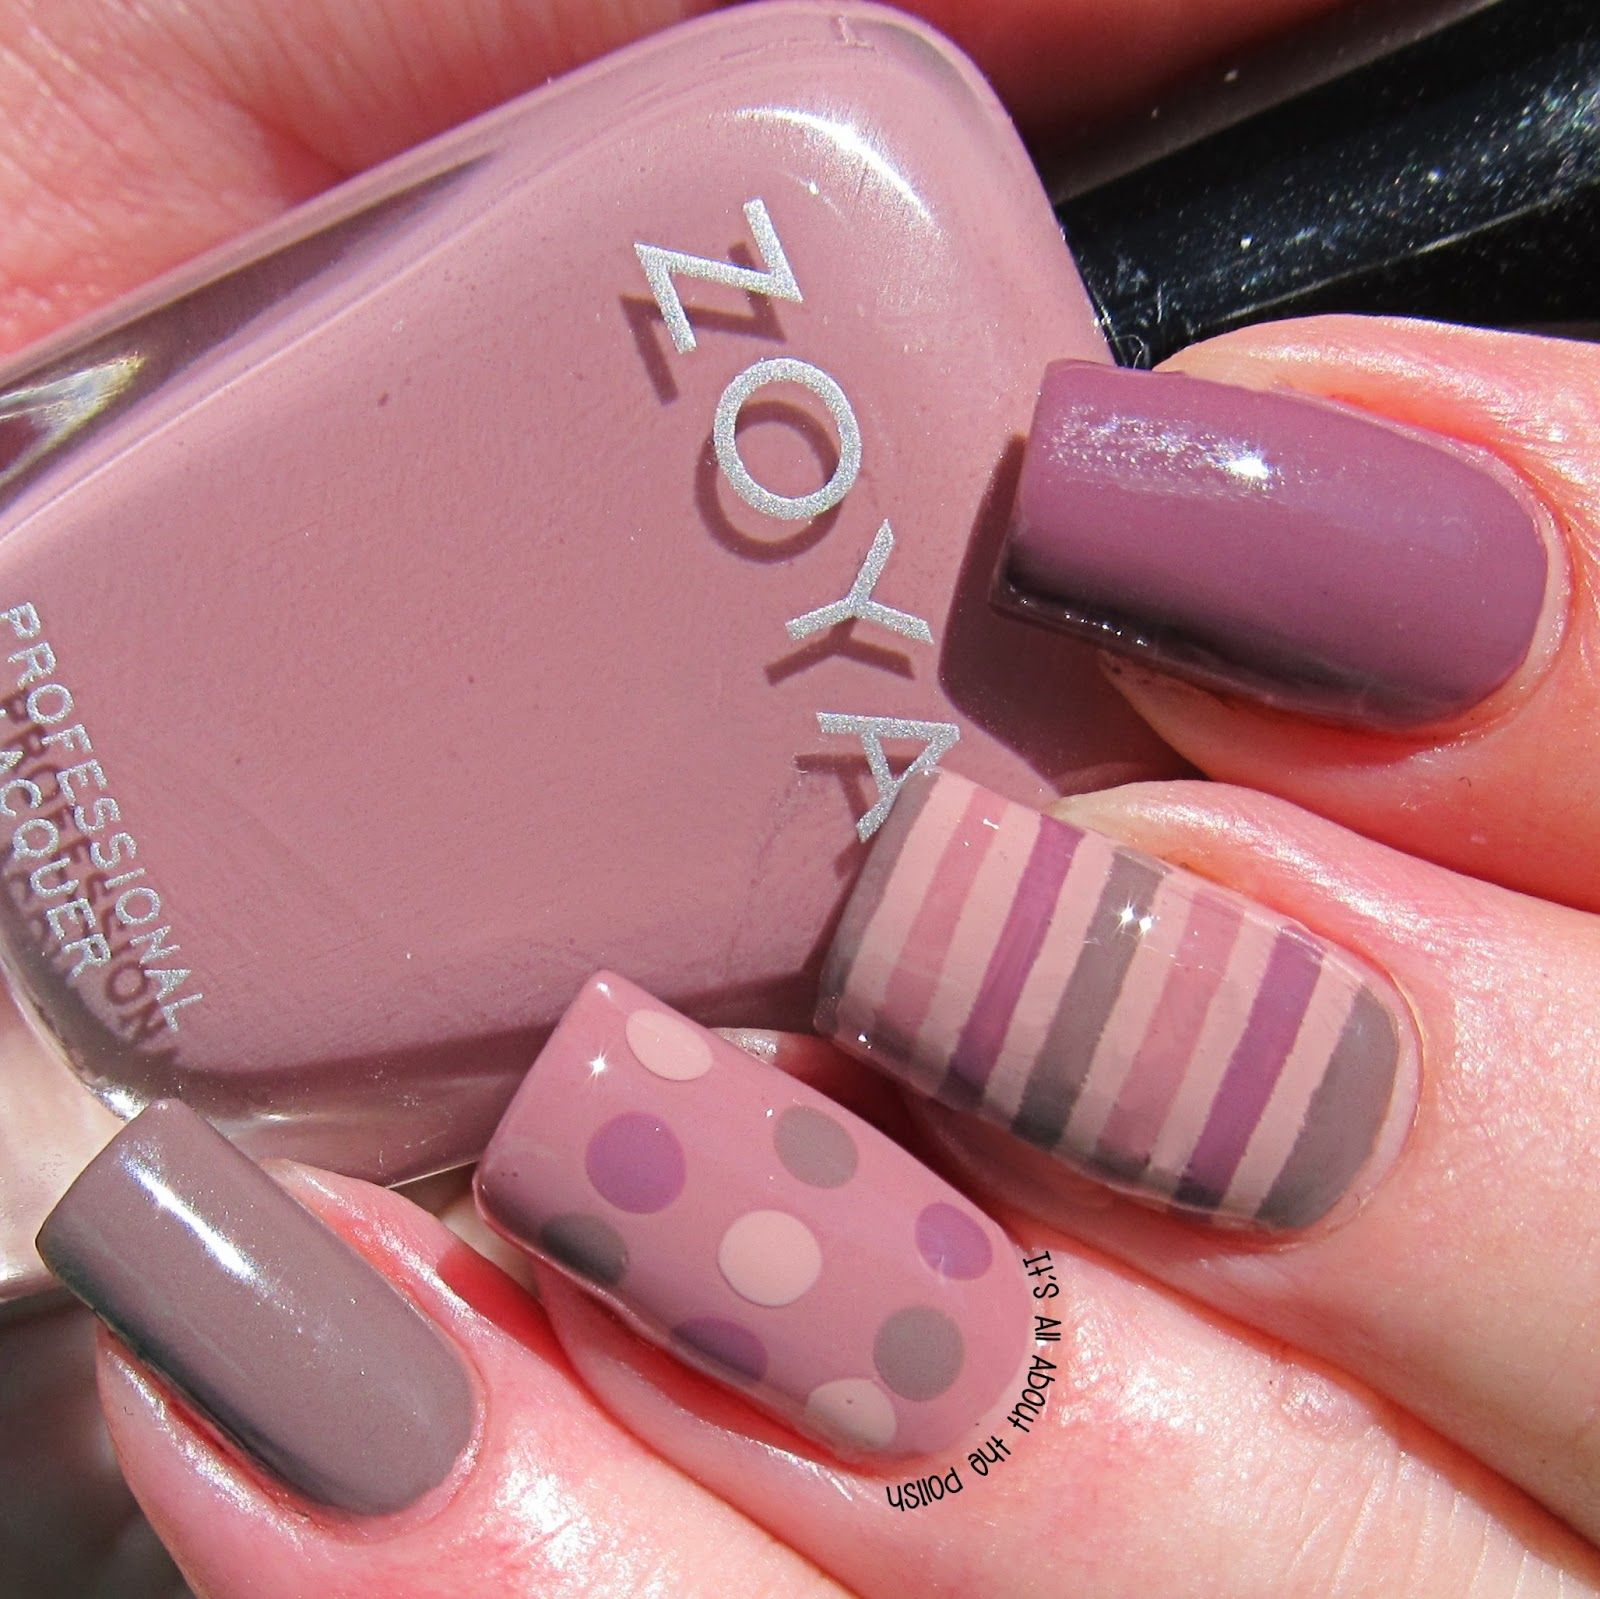 It\'s all about the polish: Zoya Neutral collection, Rue, Odette ...